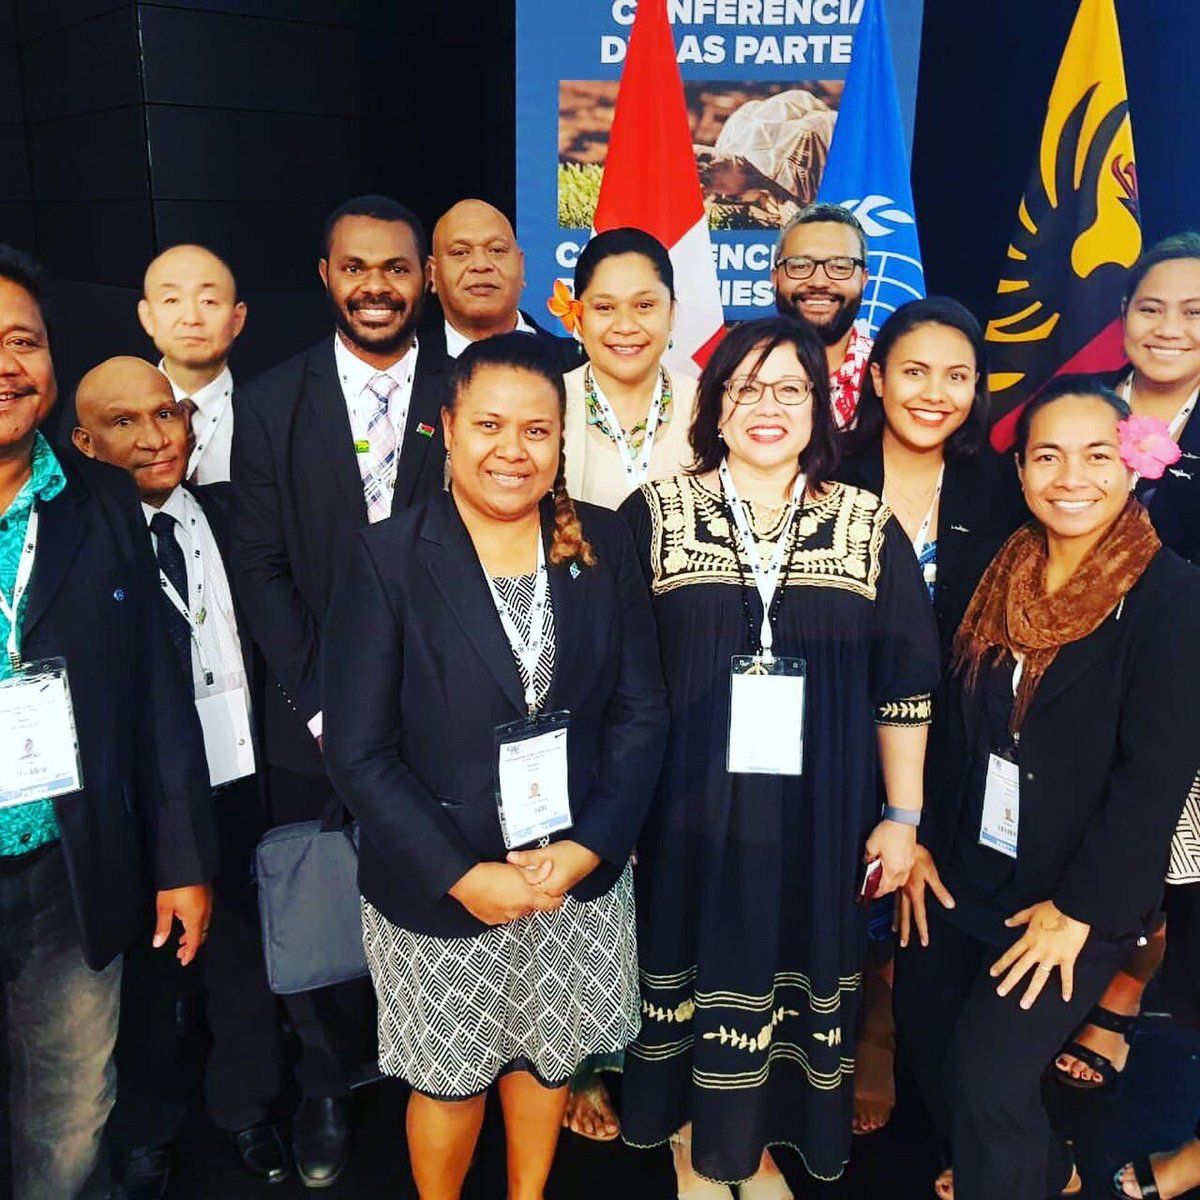 Lovely to meet the Pacific Island delegates at #citescop18 in Geneva who are committed to implement @CITES in the #Oceania region! All good fortune in following up with CoP18 decisions and let us know if you have any capacity-building or compliance assistance needs @SprepChannel